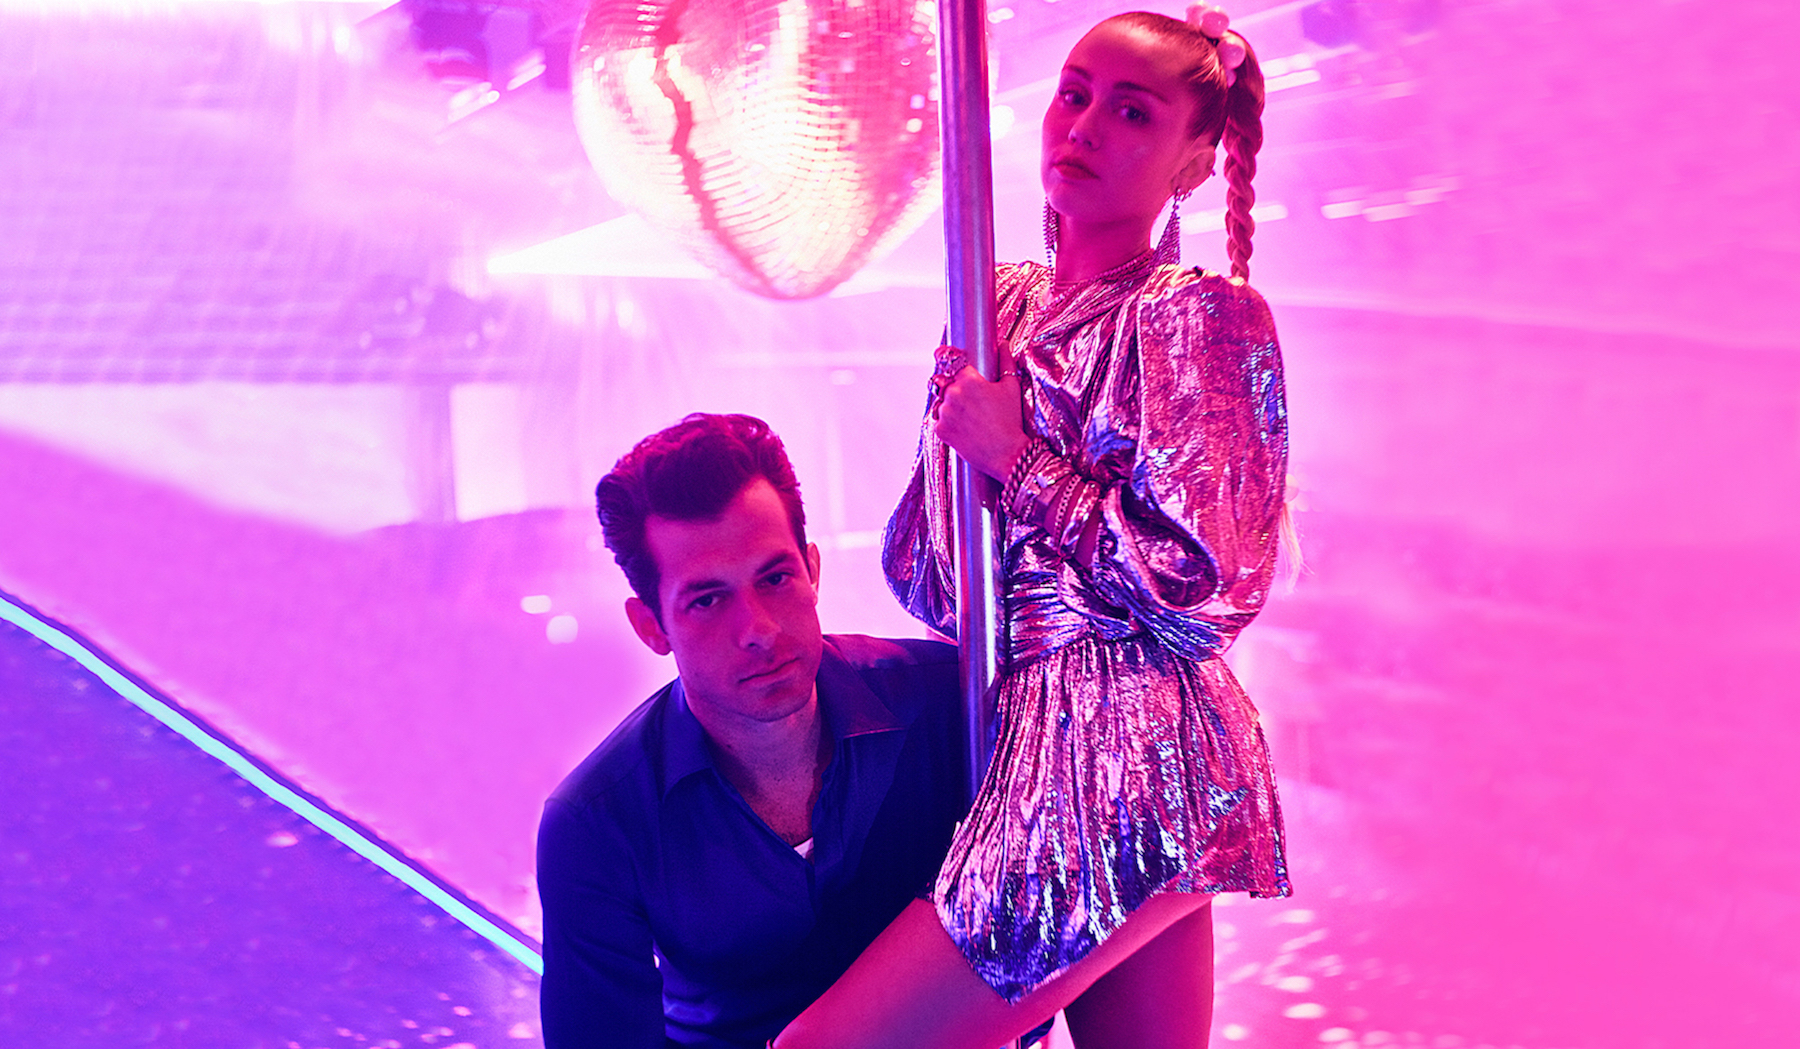 Single of the Day: Mark Ronson feat. Miley Cyrus – Nothing Breaks Like a Heart